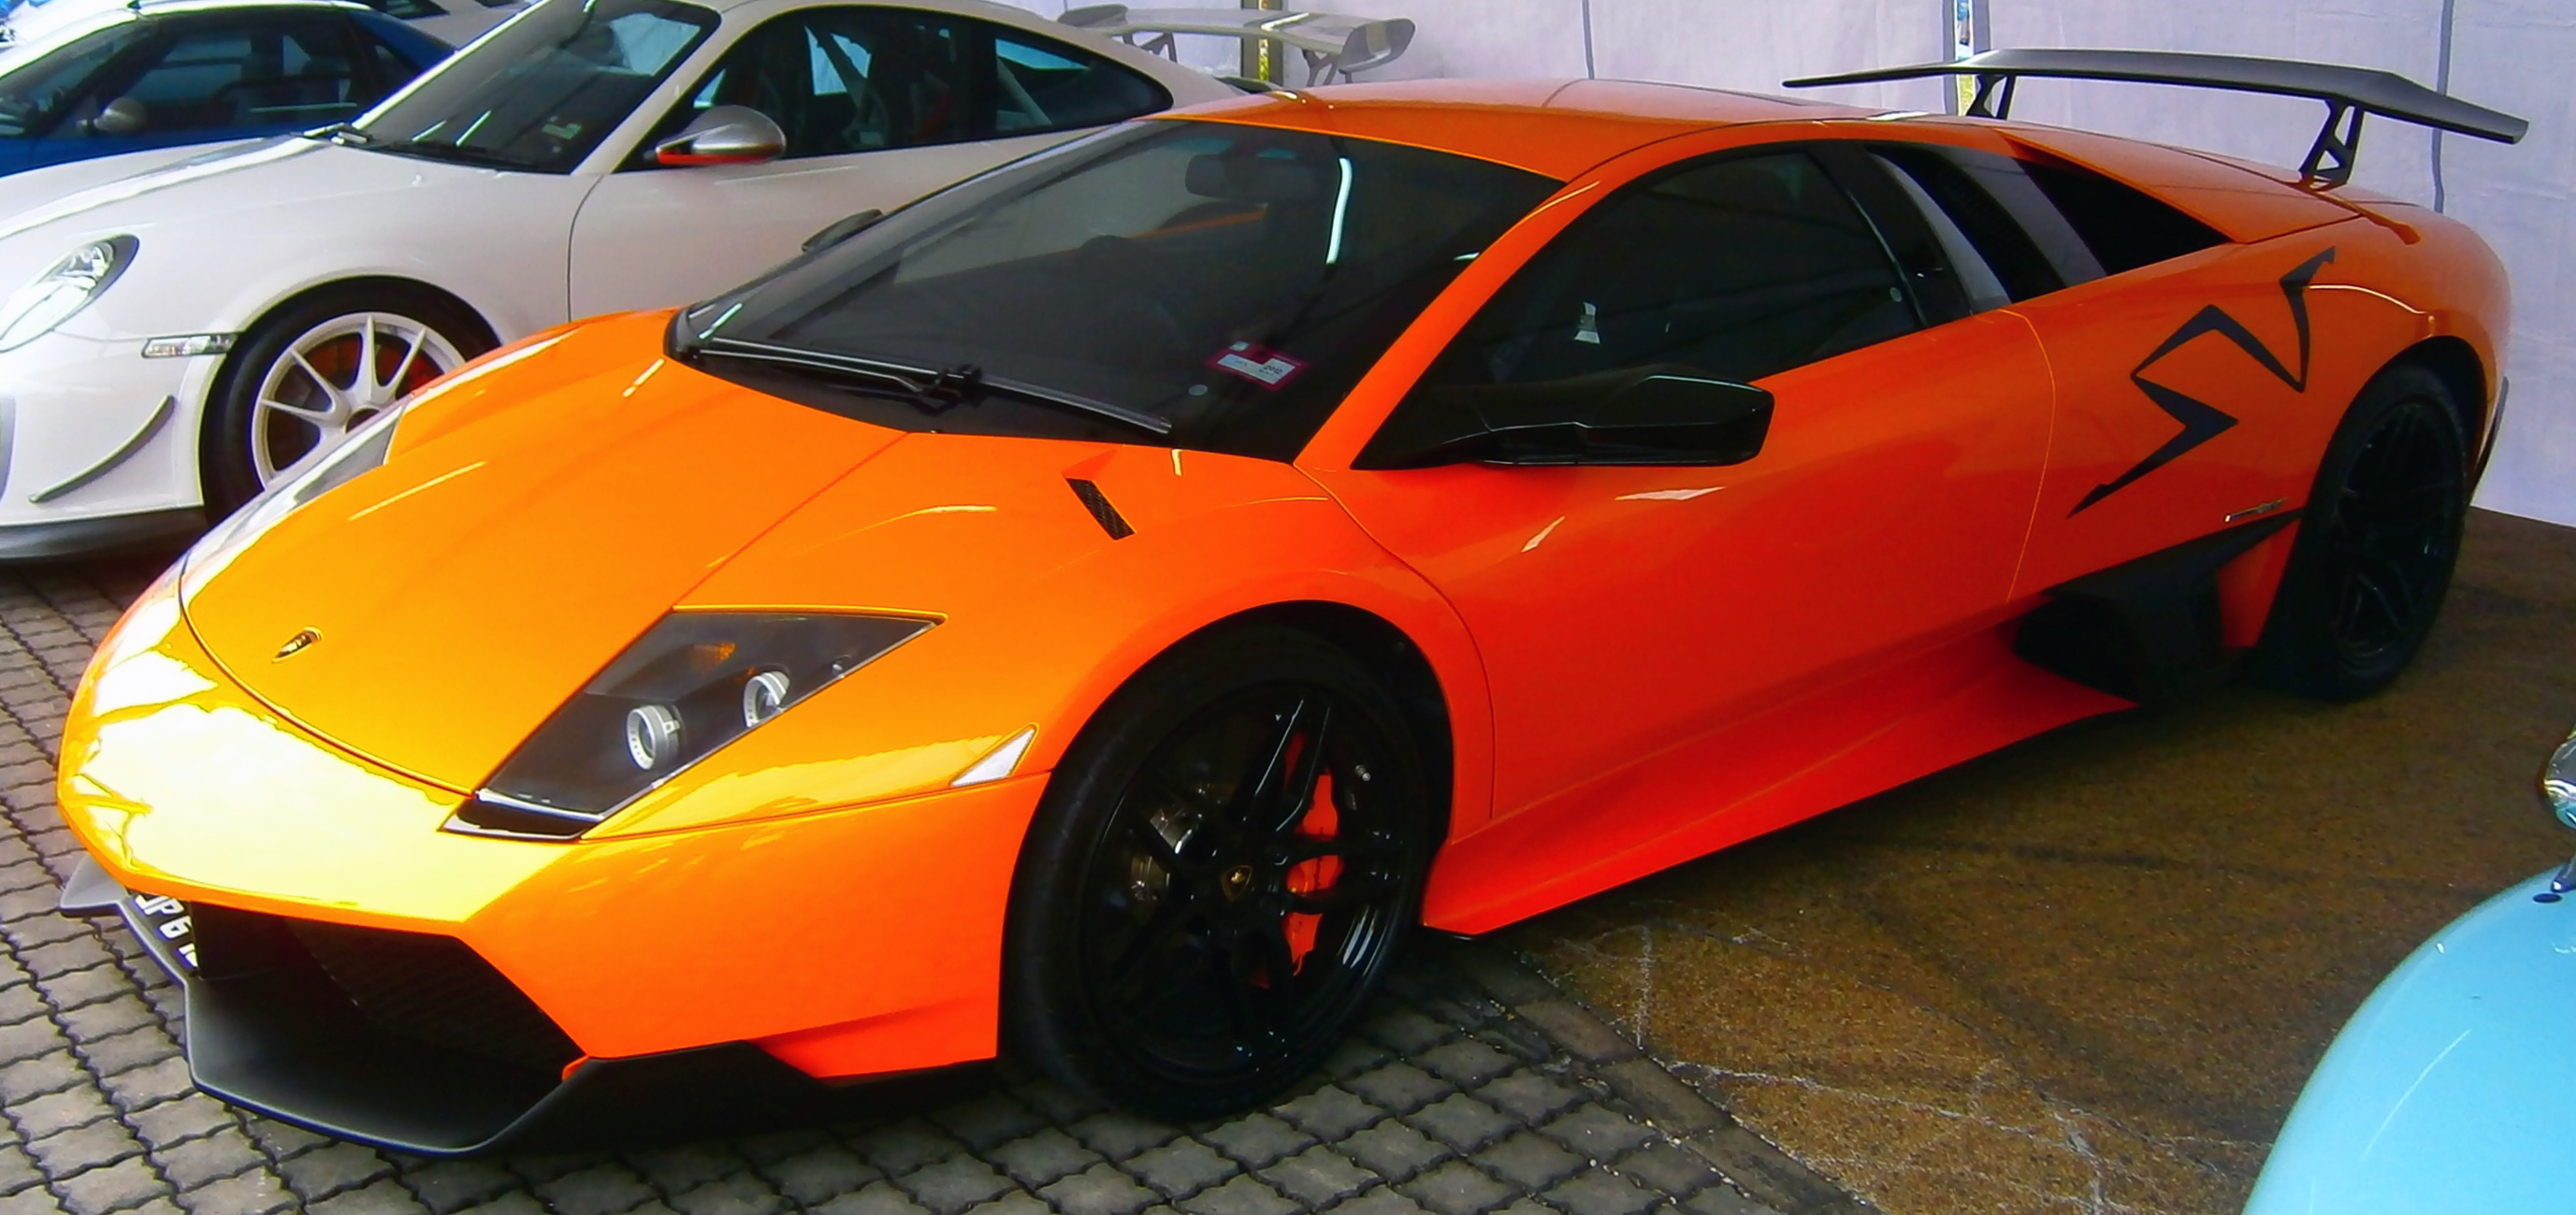 Lamborghini Murciélago Pics, Vehicles Collection